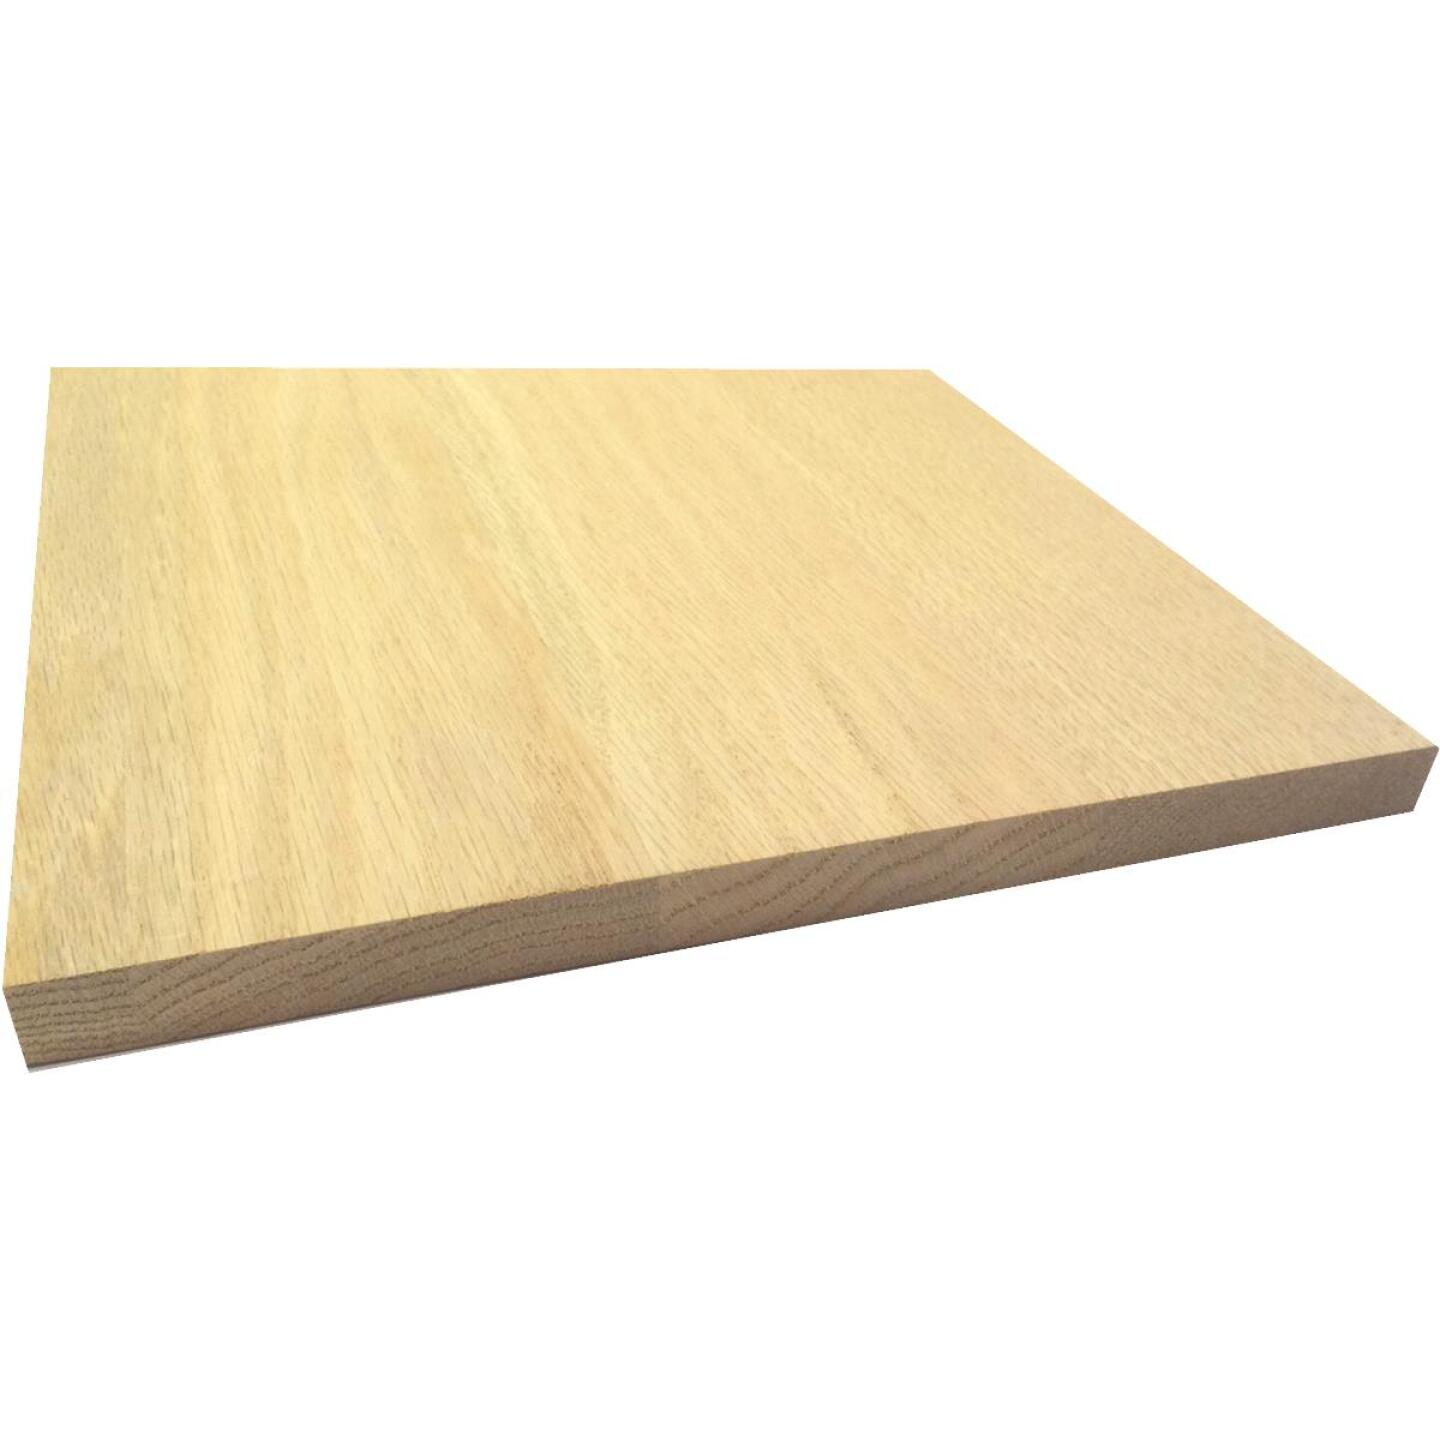 Waddell 1 In. x 12 In. x 4 Ft. Red Oak Board Image 1